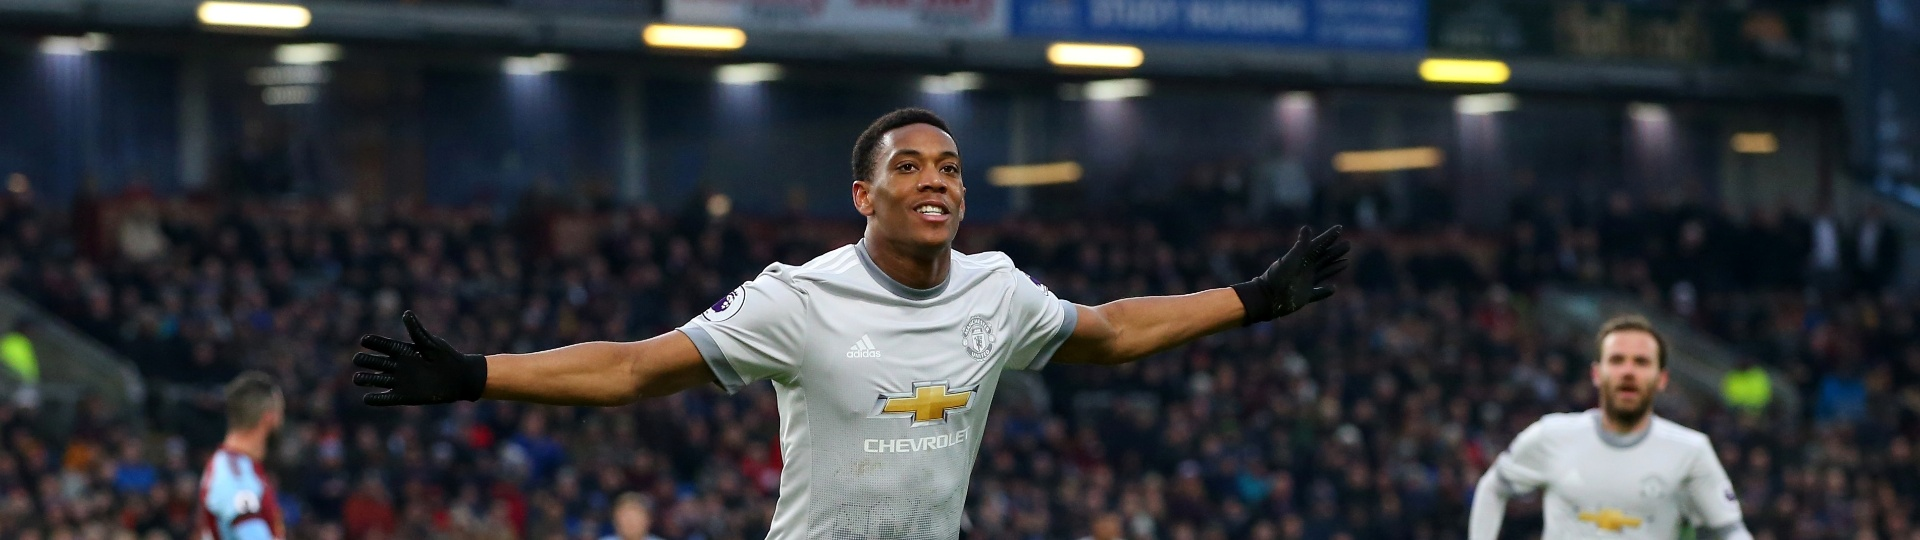 Martial comemora gol do United contra o Burnley